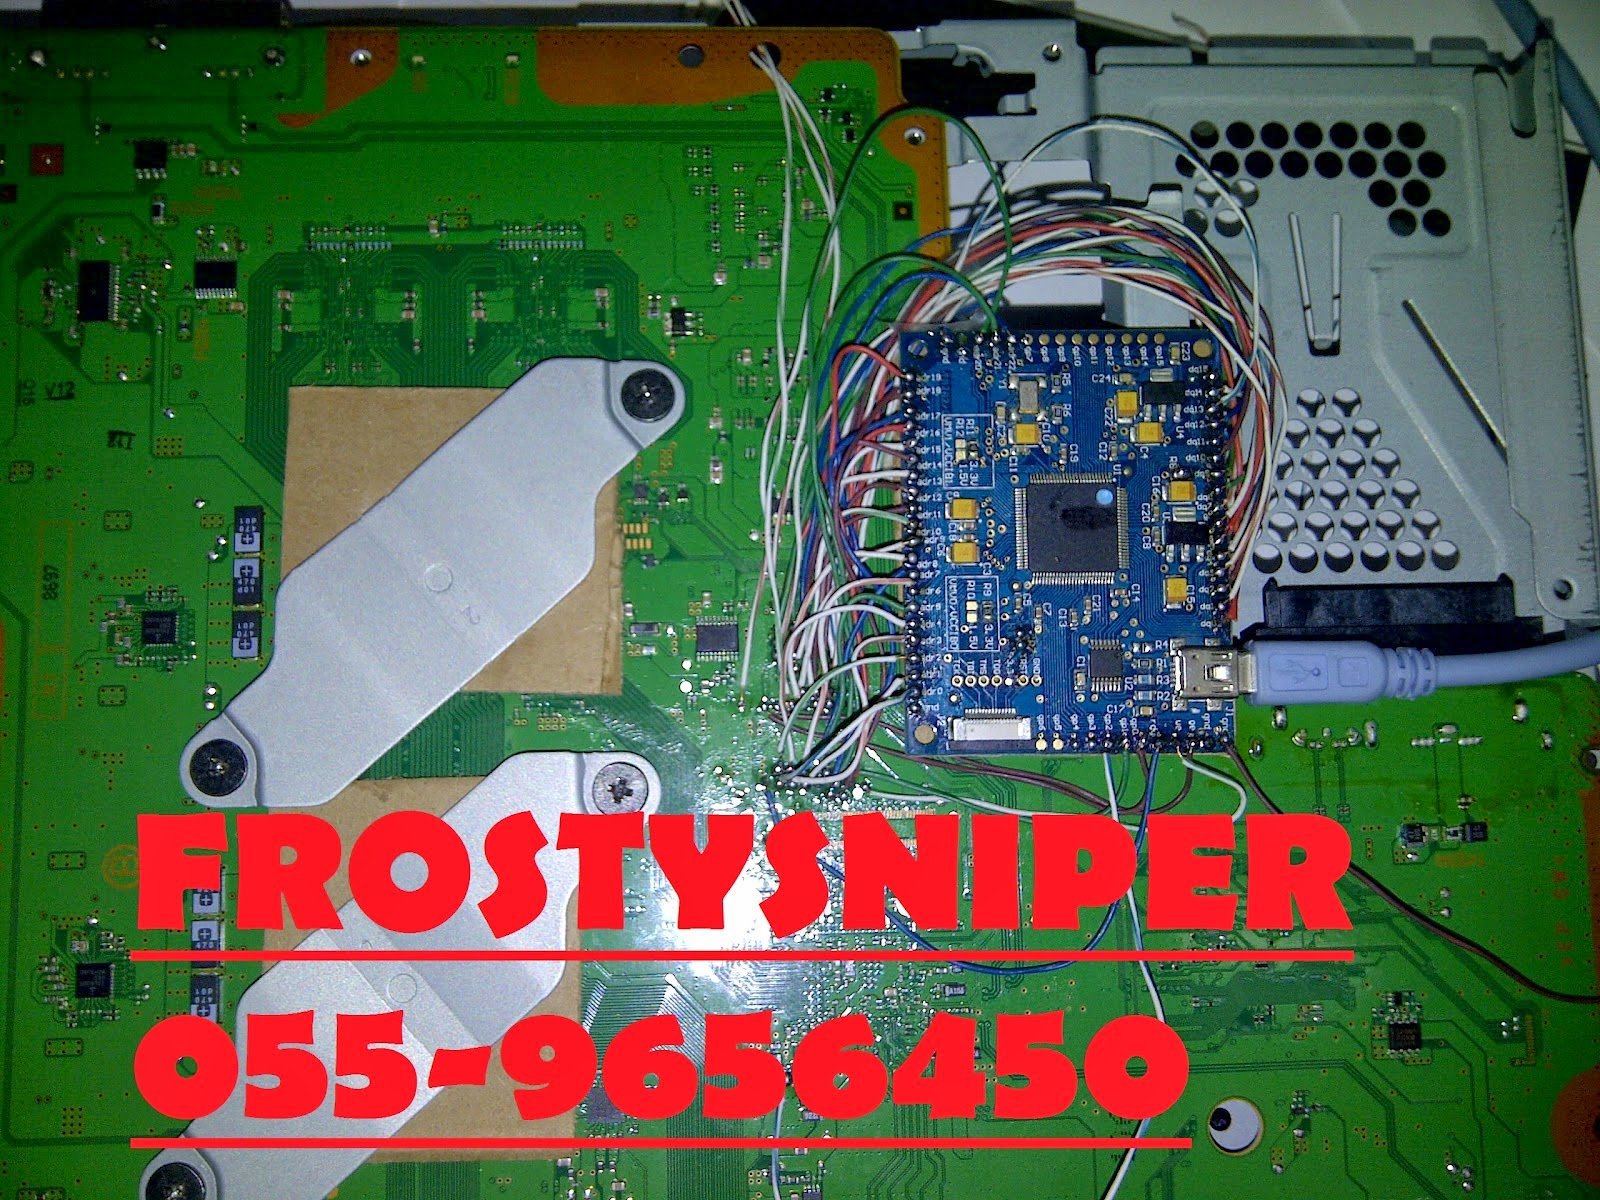 Ps3 Dubai Modding Downgrading Loop Sony Super Slim 500gb Ofw Full Game Below Are Some Pictures Of The Work Involved In